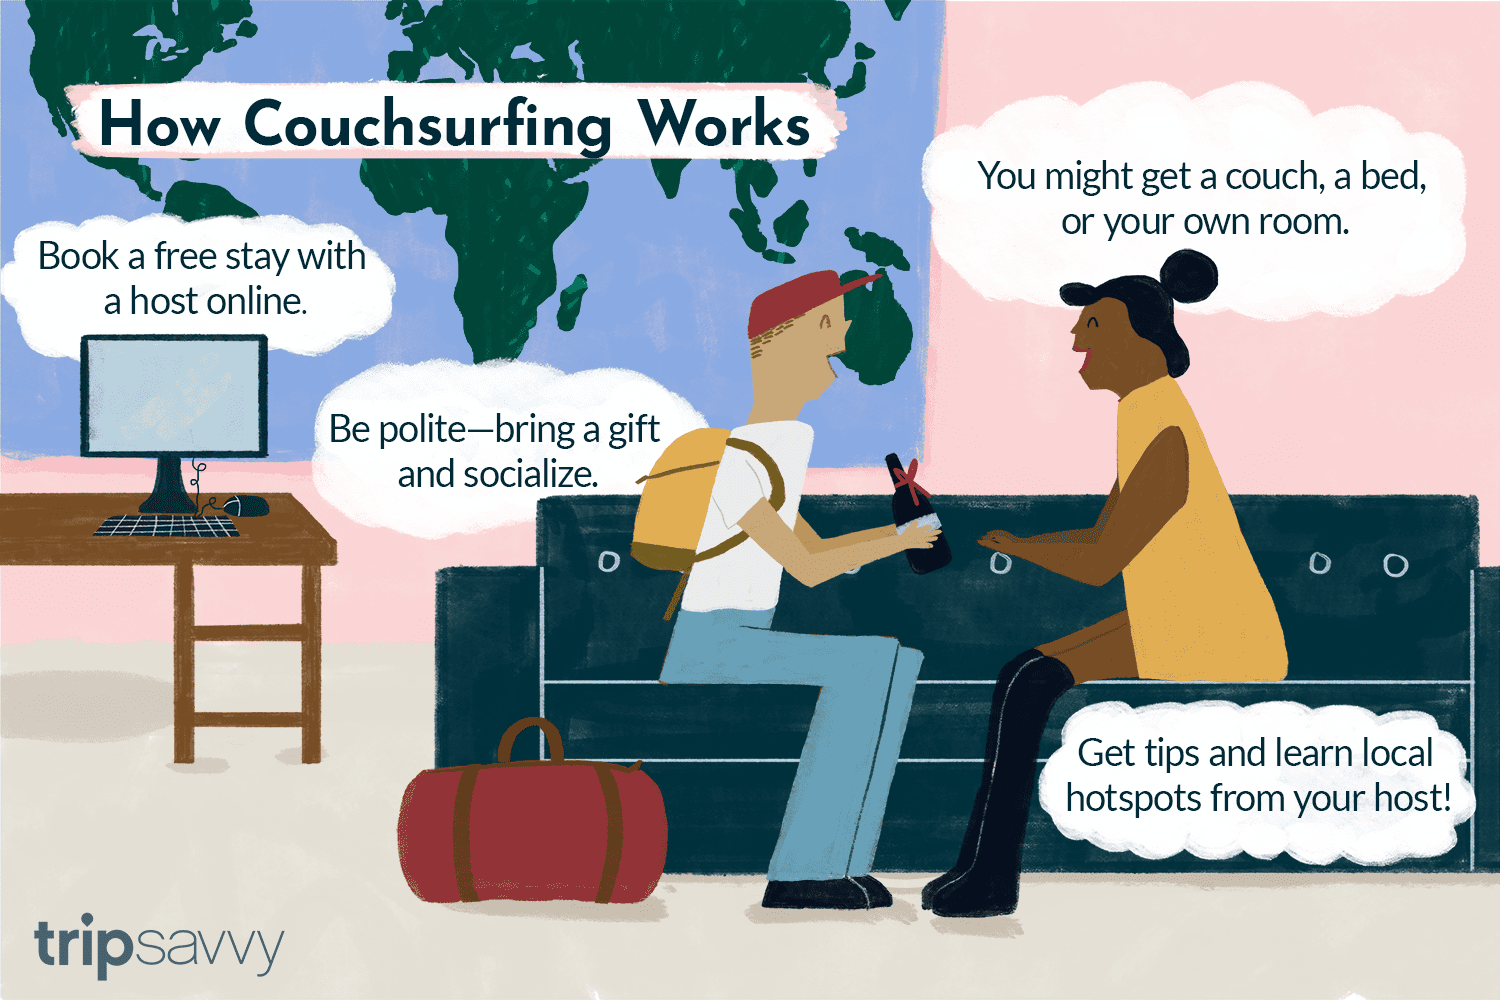 What Is Couchsurfing? Important Safety Tips and Advice